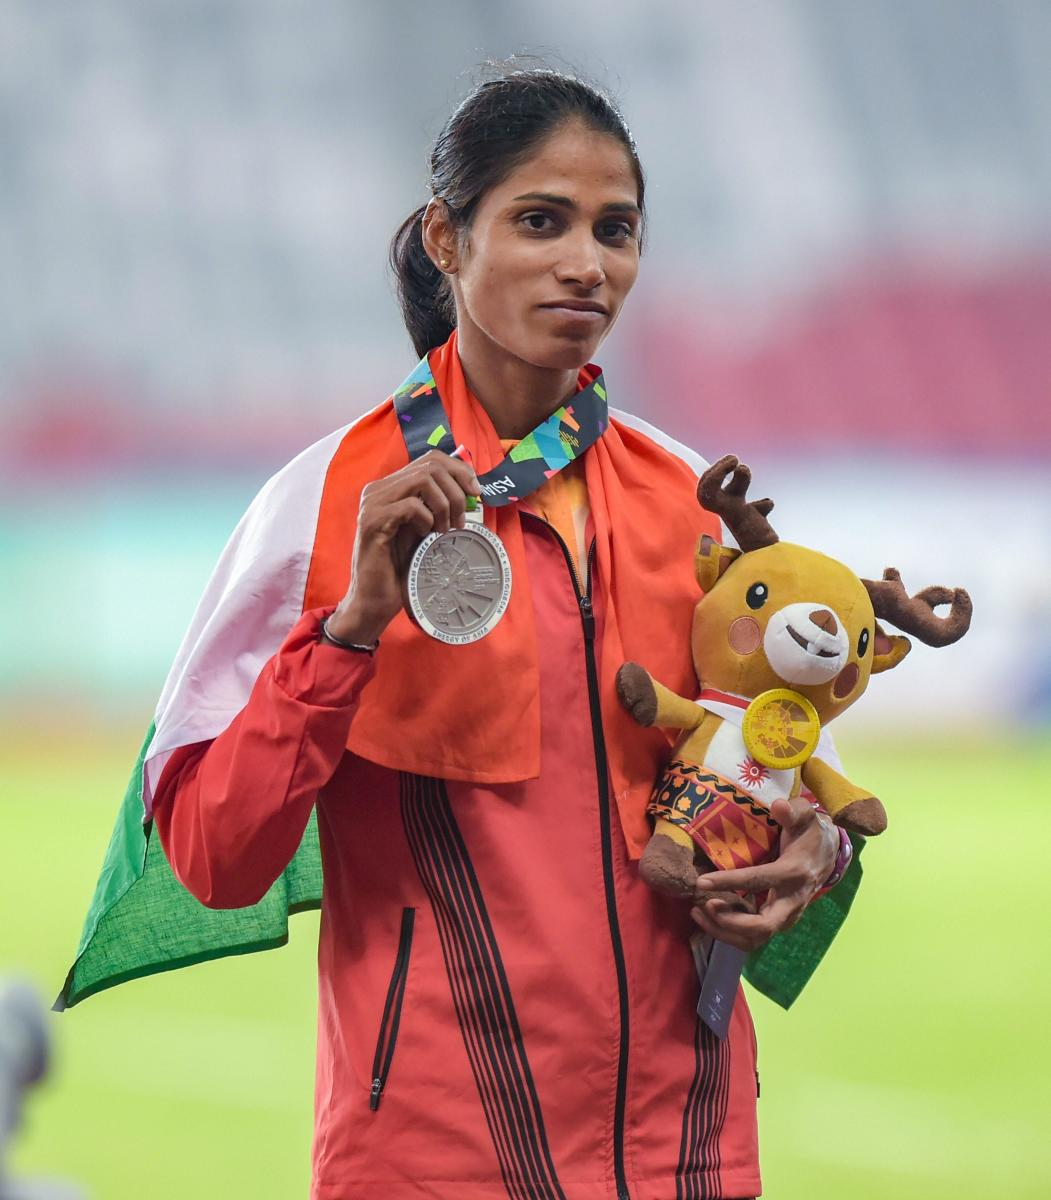 Silver medallist India's Steeplechase athlete Sudha Singh poses for photographs during the 18th Asian Games Jakarta - Palembang 2018, in Jakarta on Monday, Aug 27, 2018. (PTI Photo)